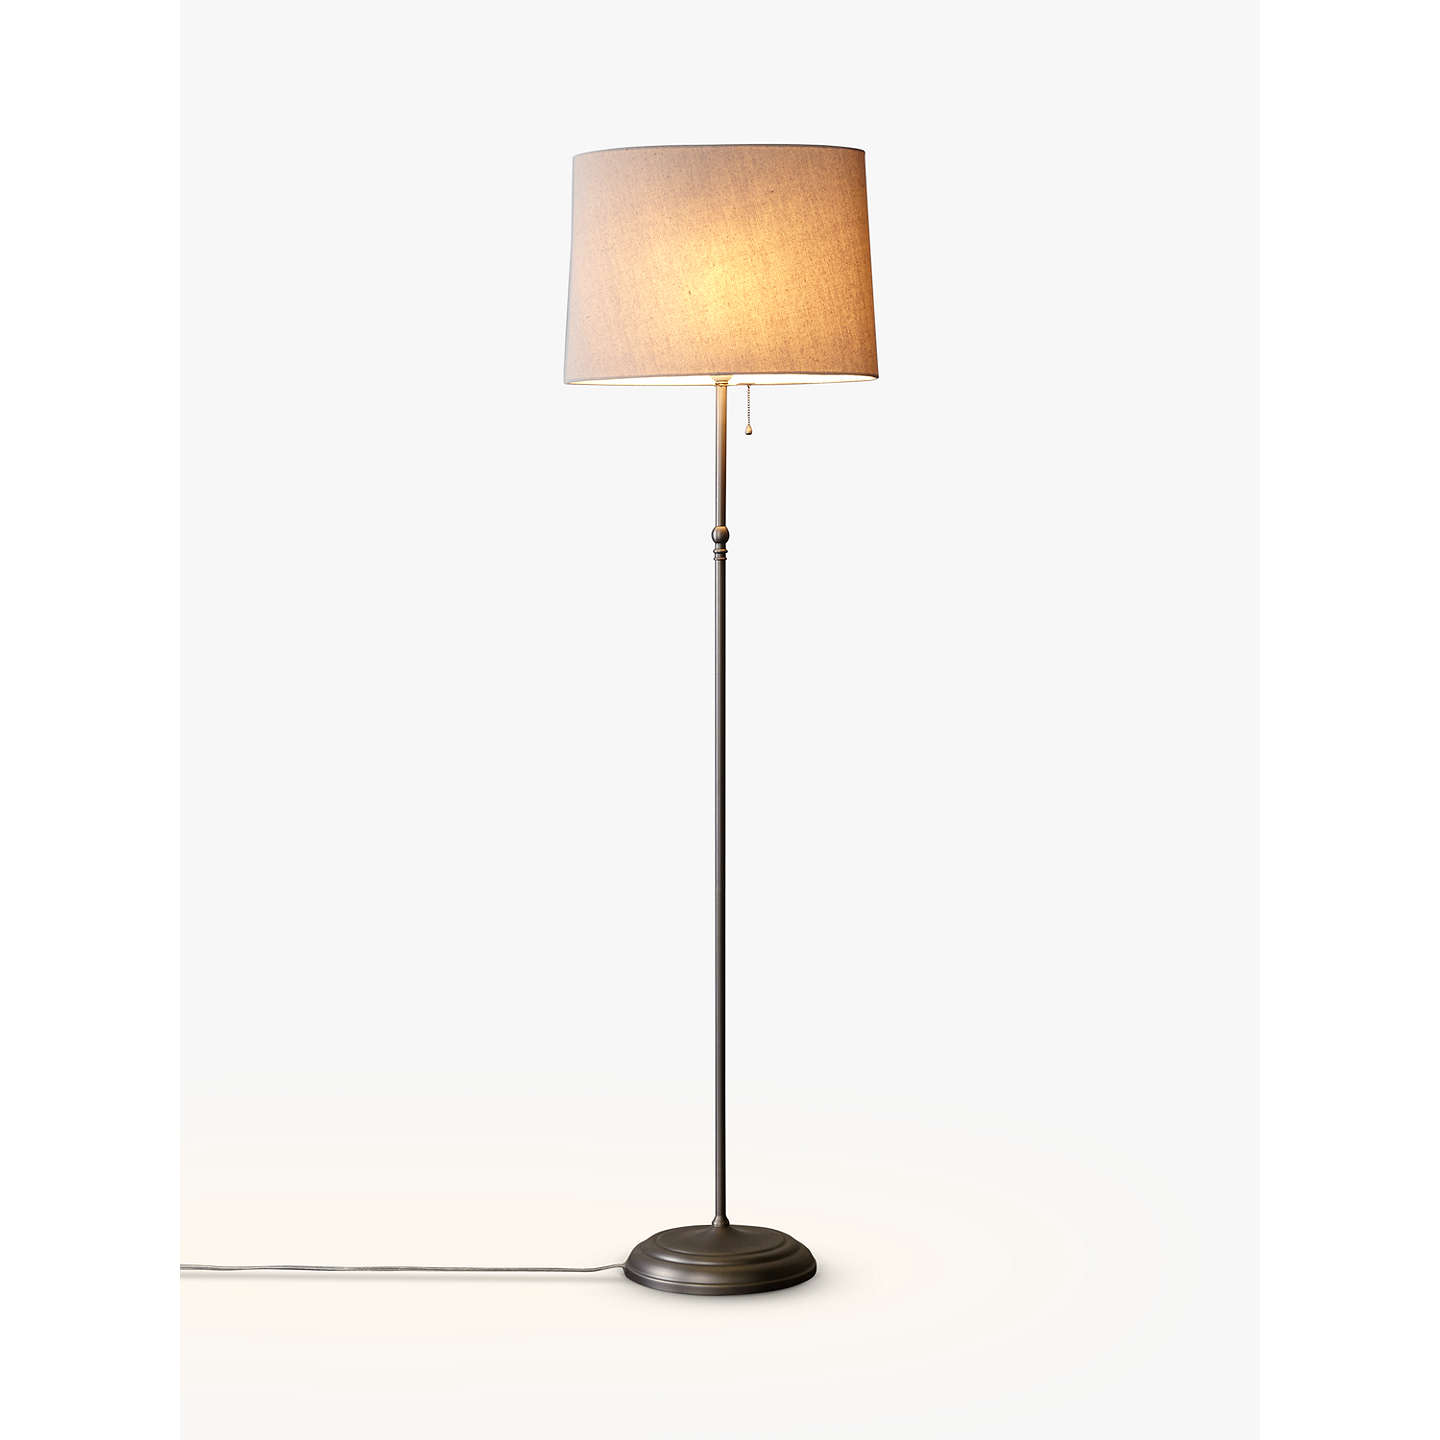 John lewis isabel oval shade floor lamp pewter at john lewis buyjohn lewis isabel oval shade floor lamp pewter online at johnlewis aloadofball Images